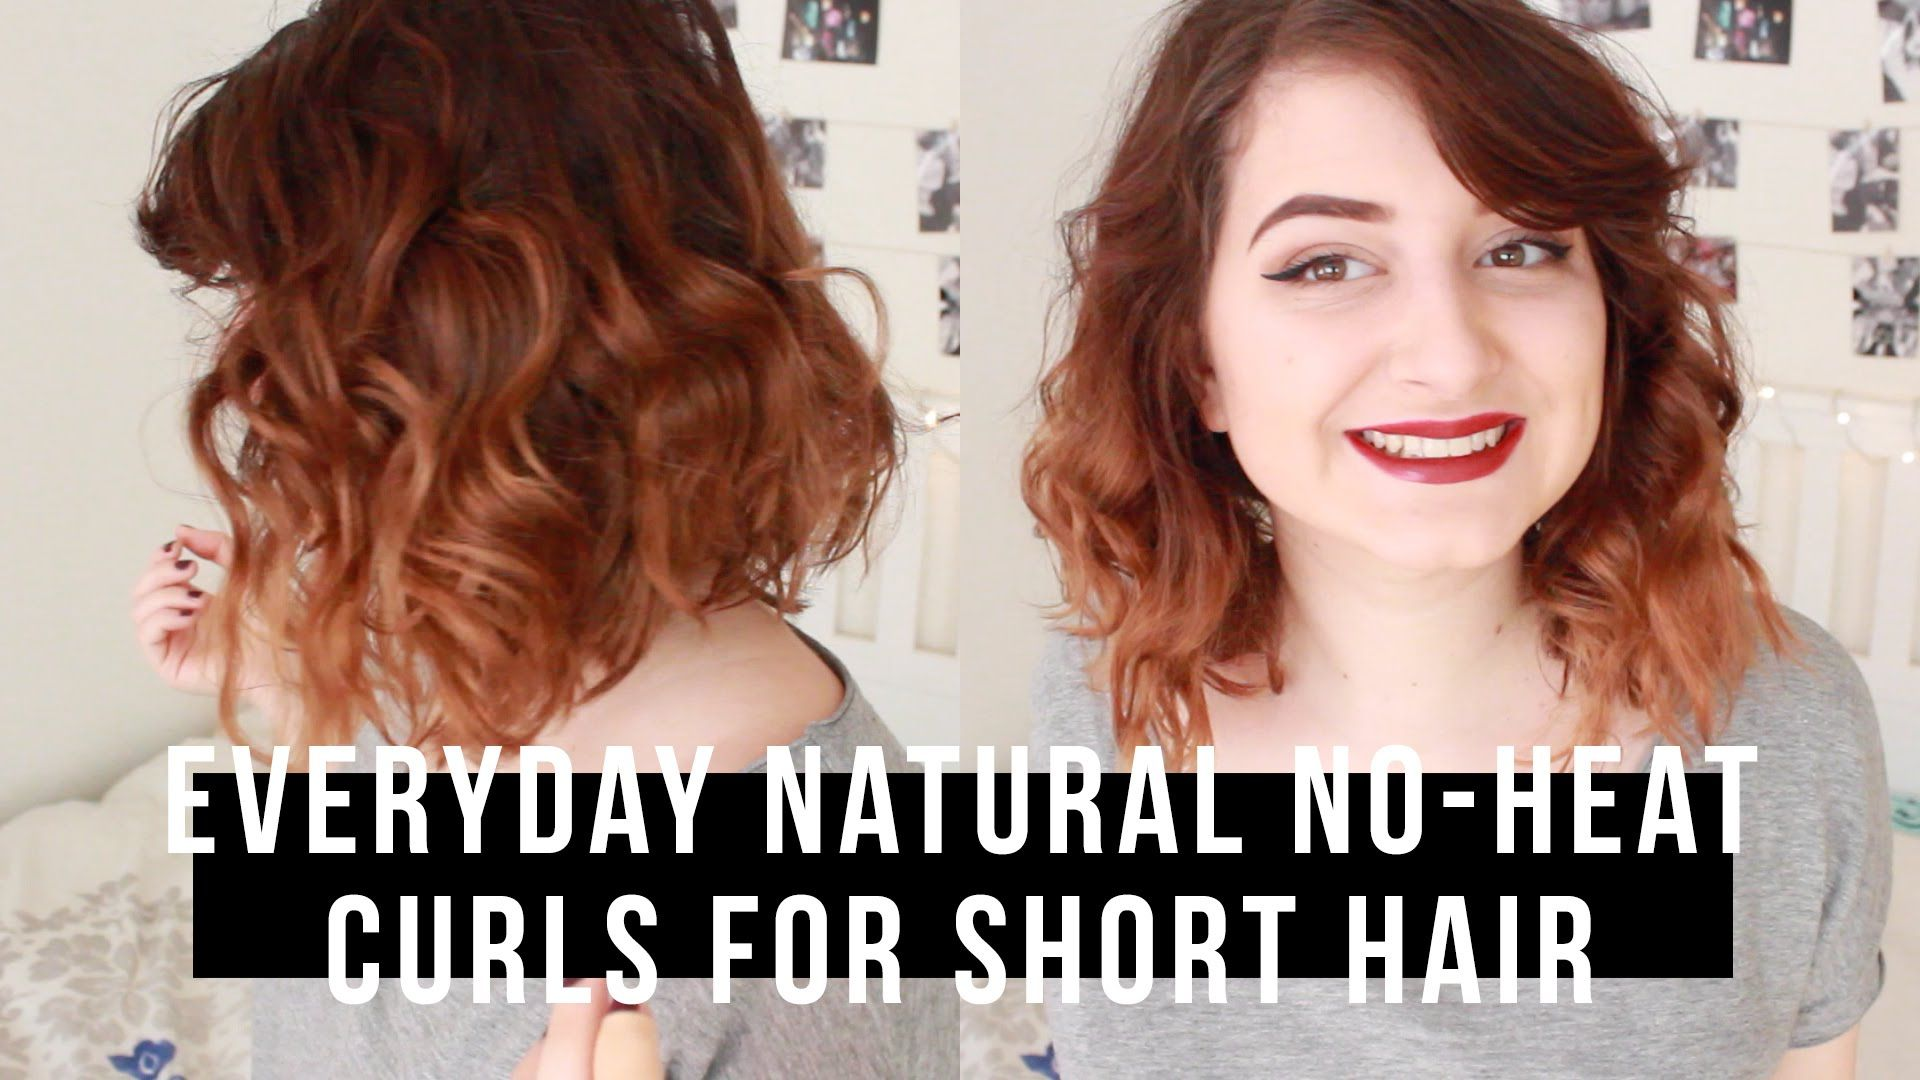 Everyday Natural No Heat Curls For Short Hair How To Curl Short Hair Curls No Heat Hair Without Heat